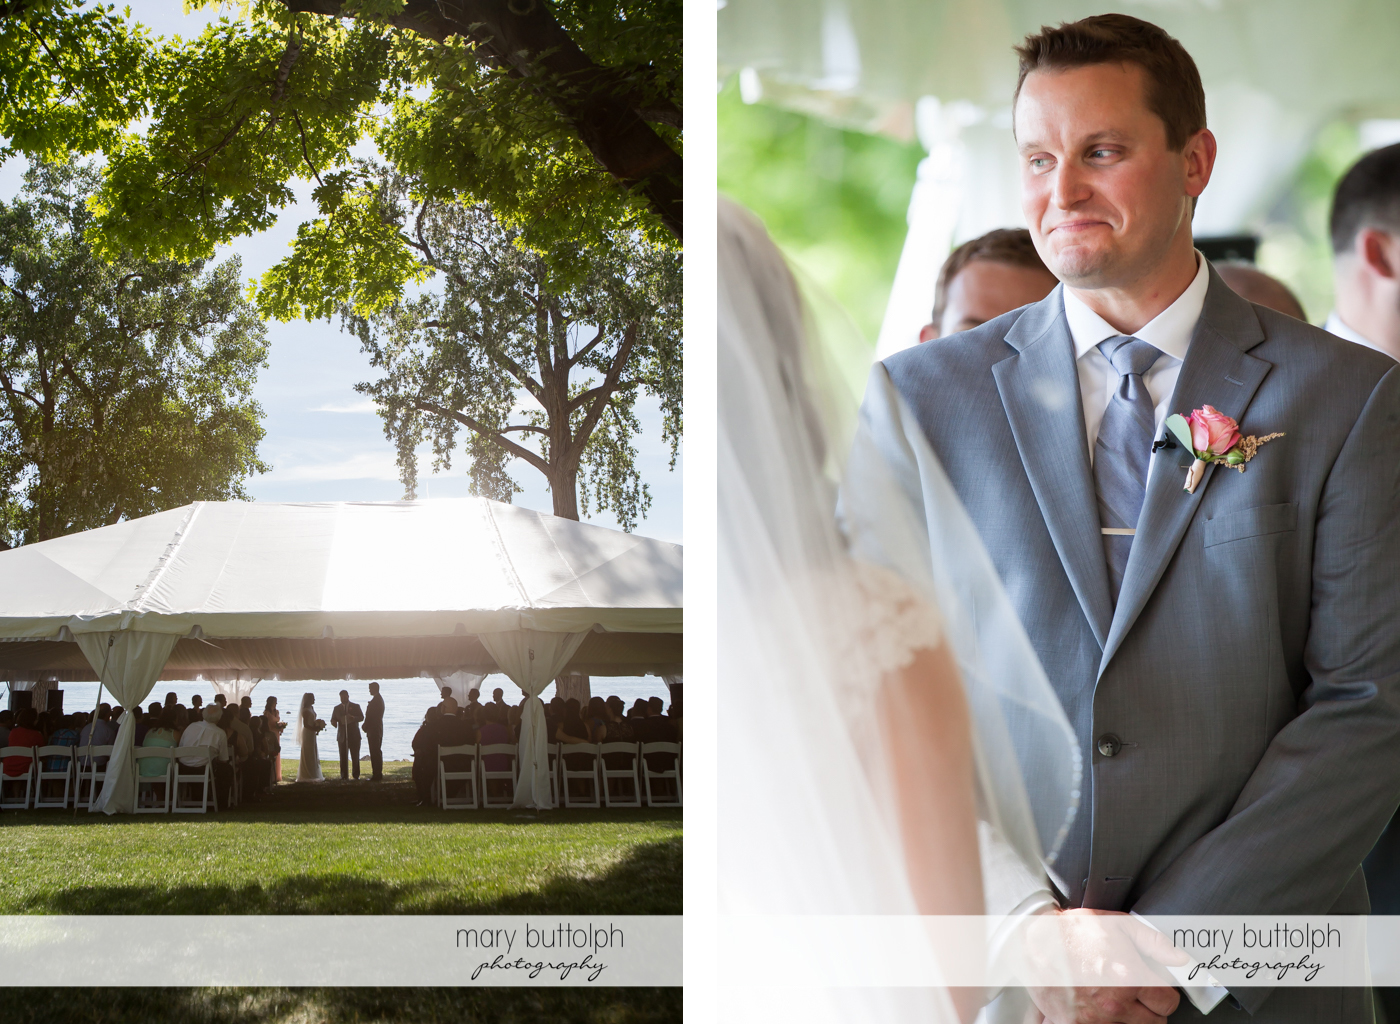 The couple and their guests in the wedding tent and the dashing groom at the Inns of Aurora Wedding